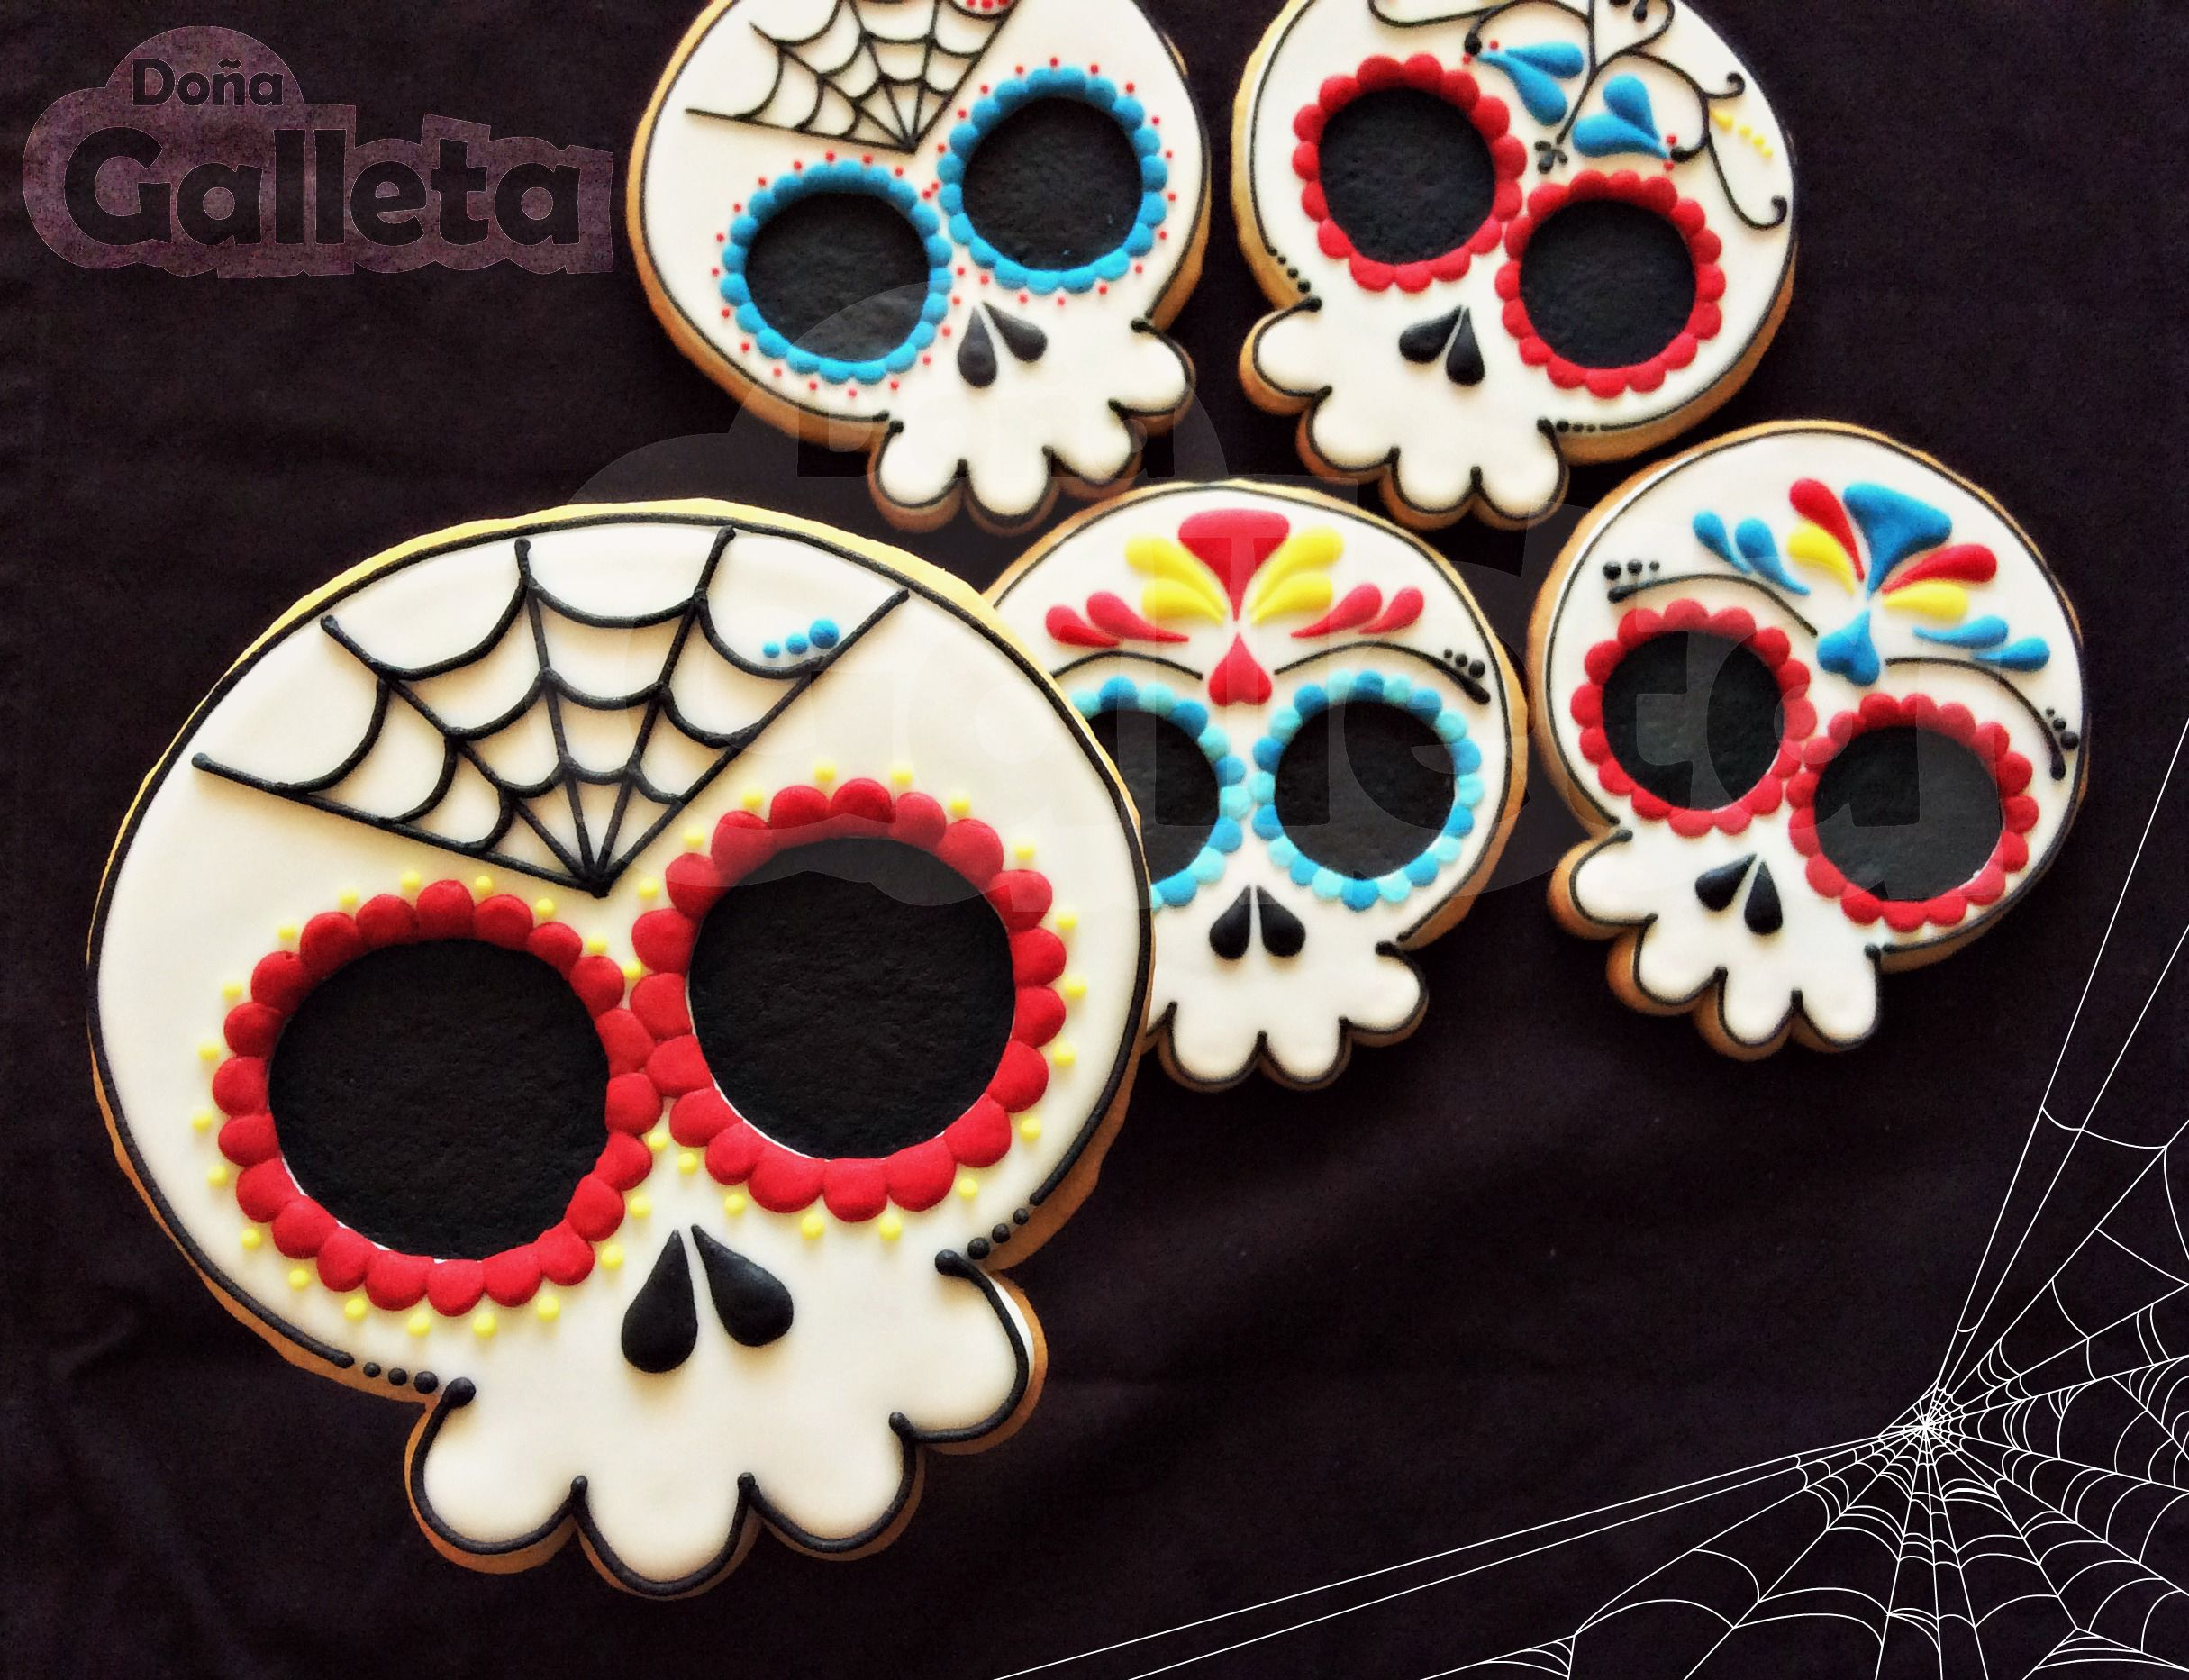 Galletas decoradas. Feliz Halloween